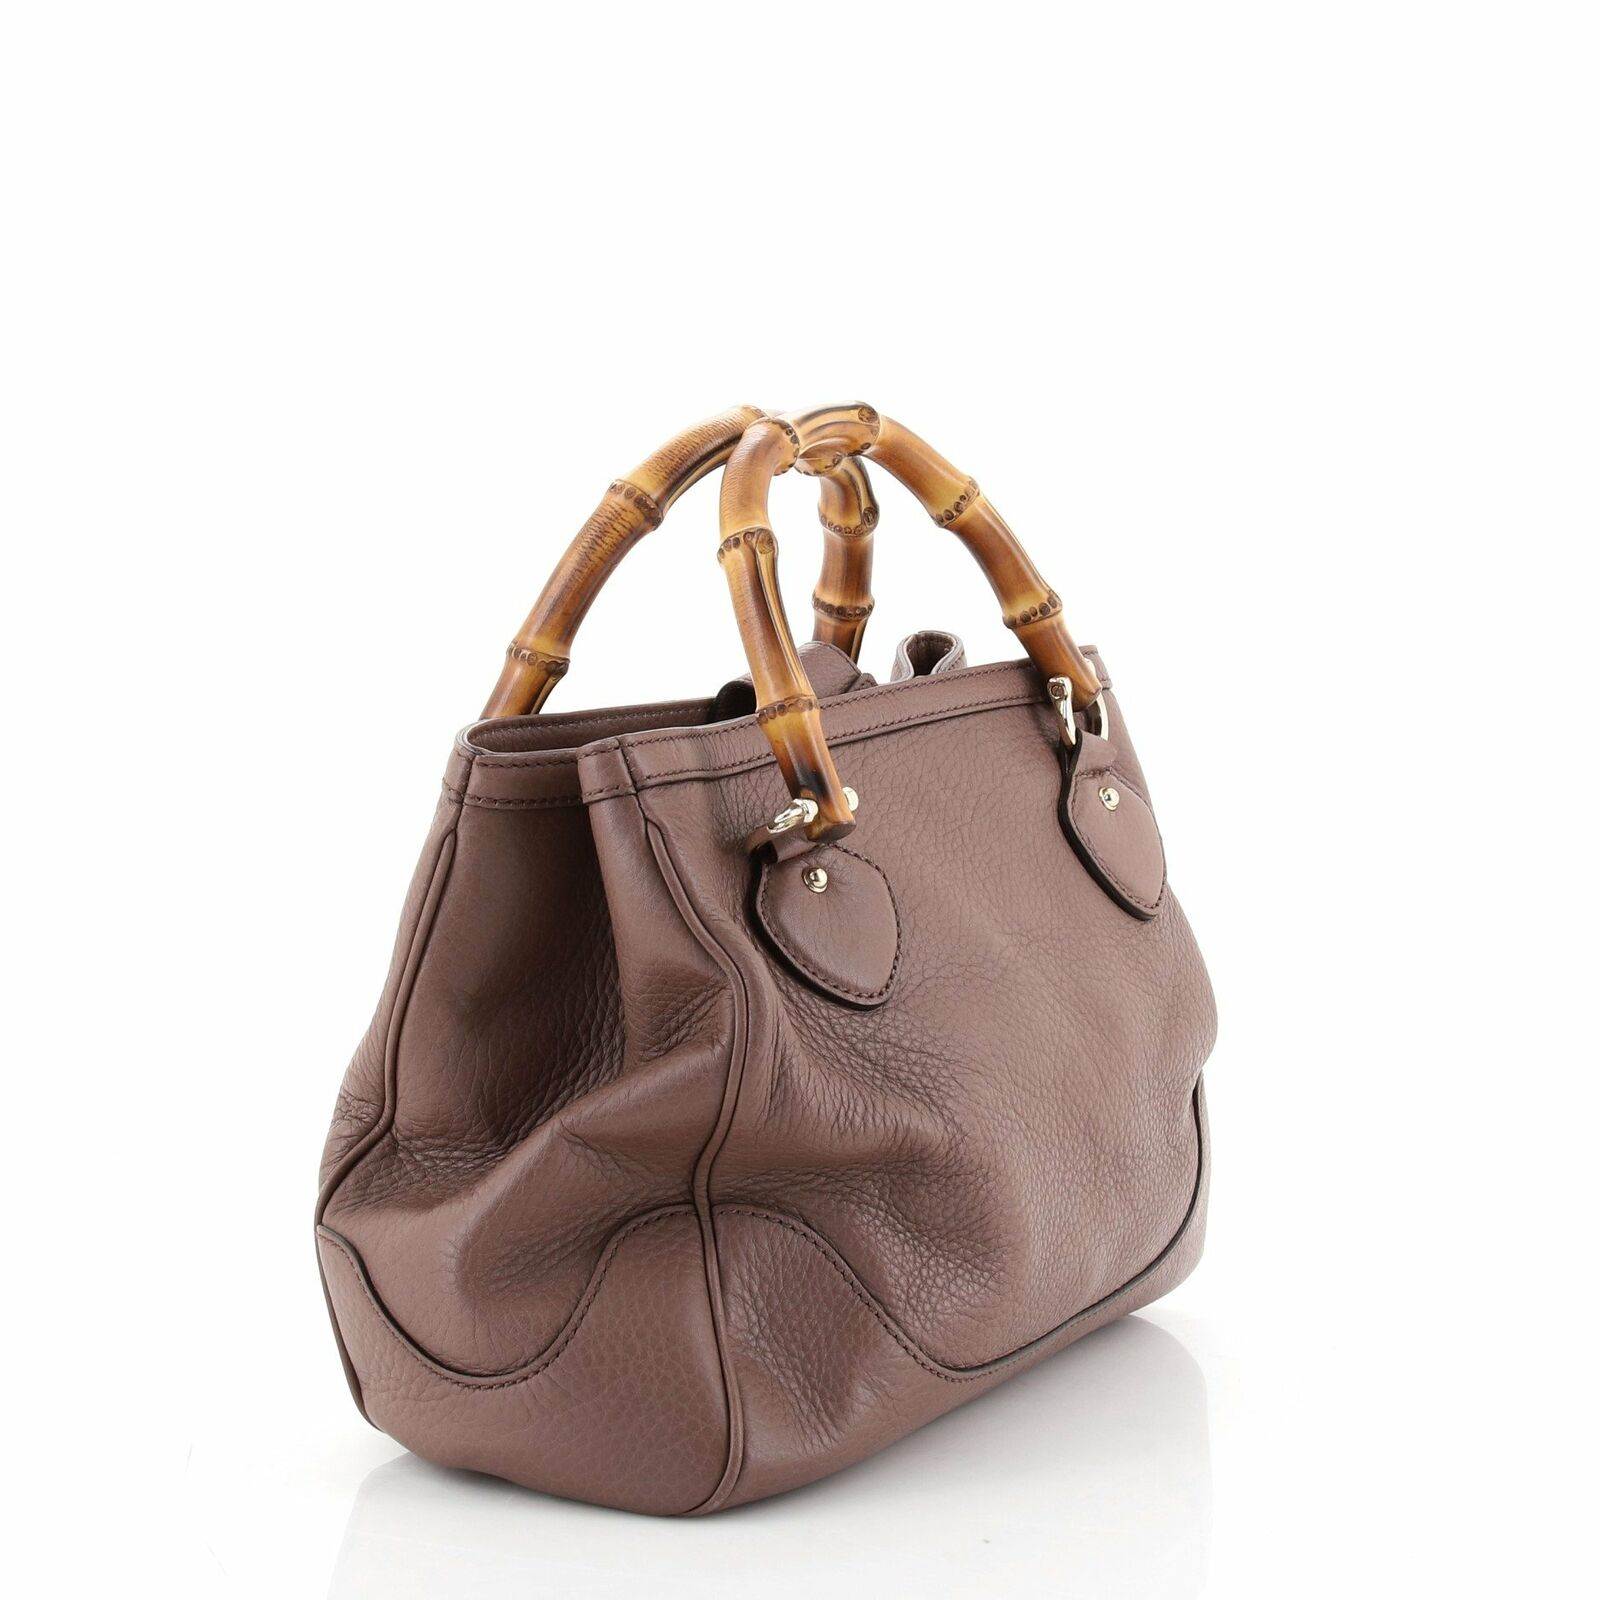 Gucci Diana Bamboo Top Handle Tote Leather Small - image 2